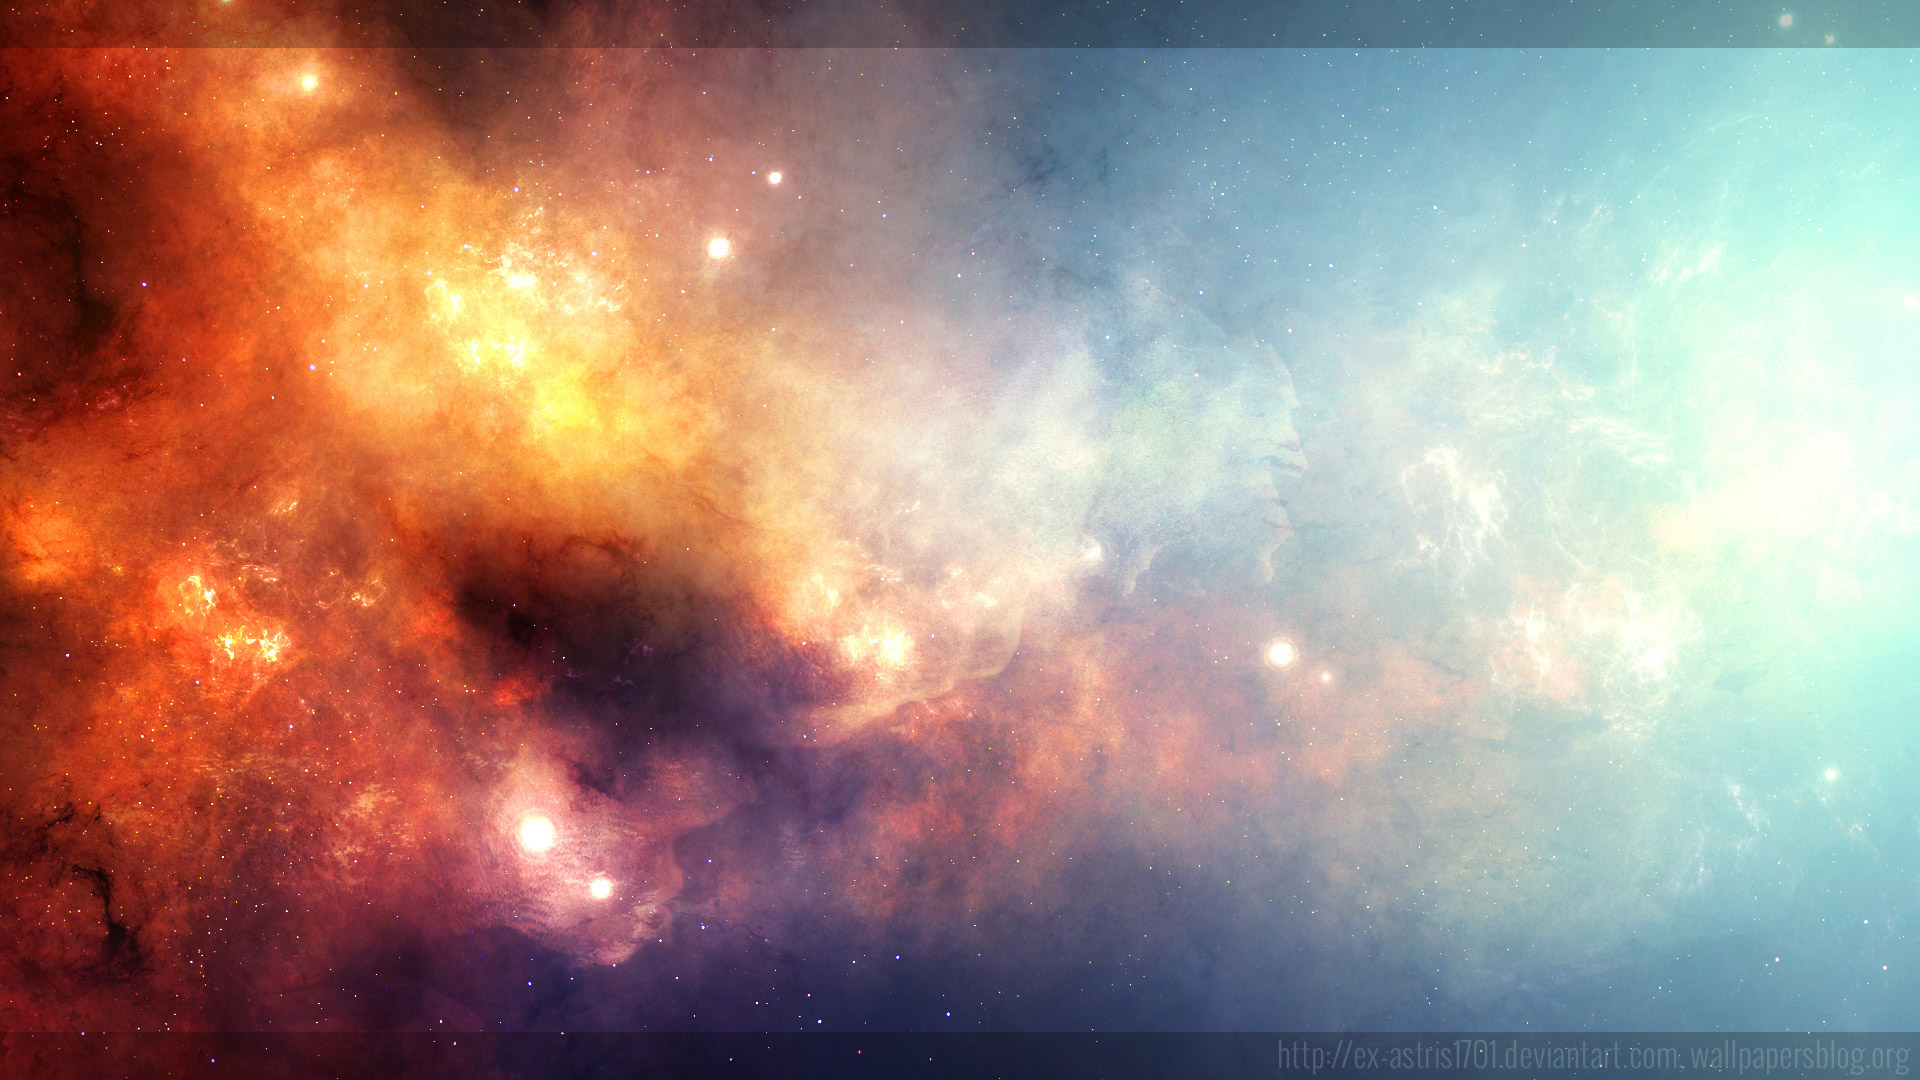 Space Hd Wallpapers 1080p - WallpaperSafari